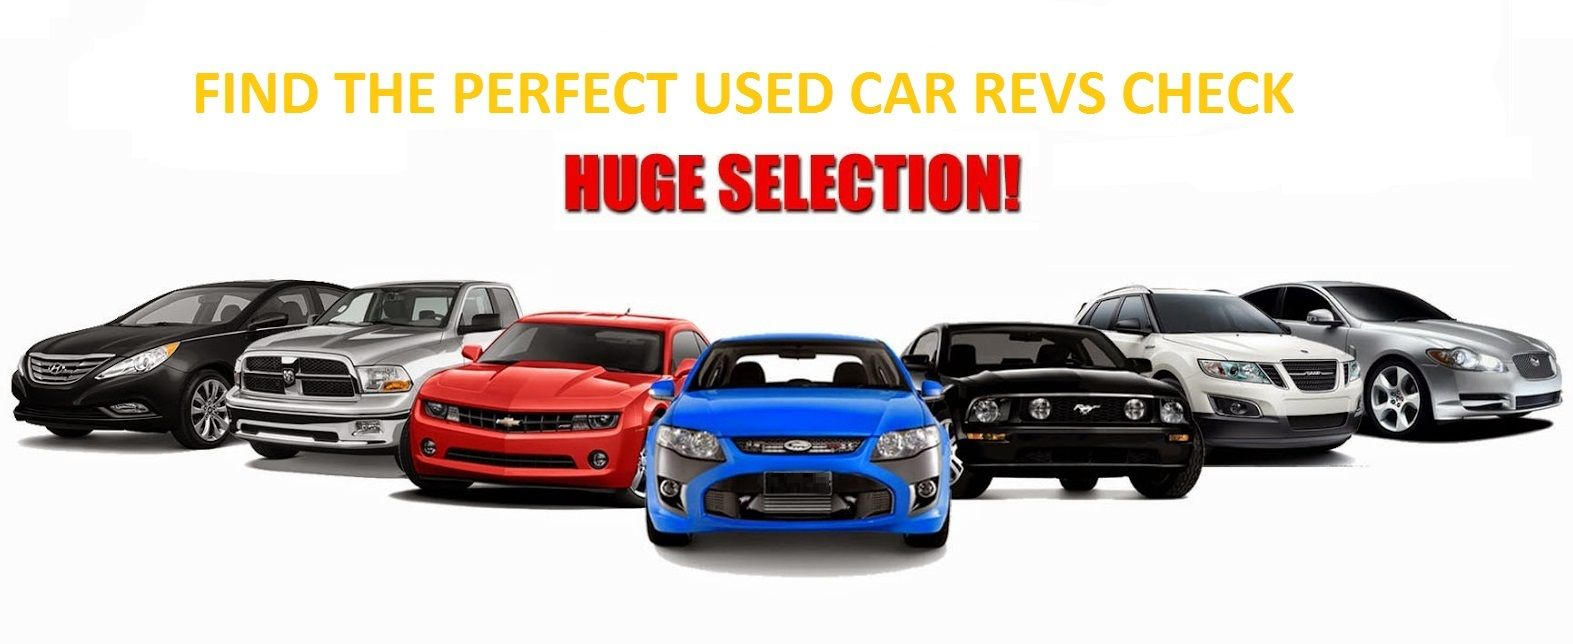 We are your ultimate online source for best in quality cheap used cars and trucks for sale we have a large inventory of affordable second hand automobiles